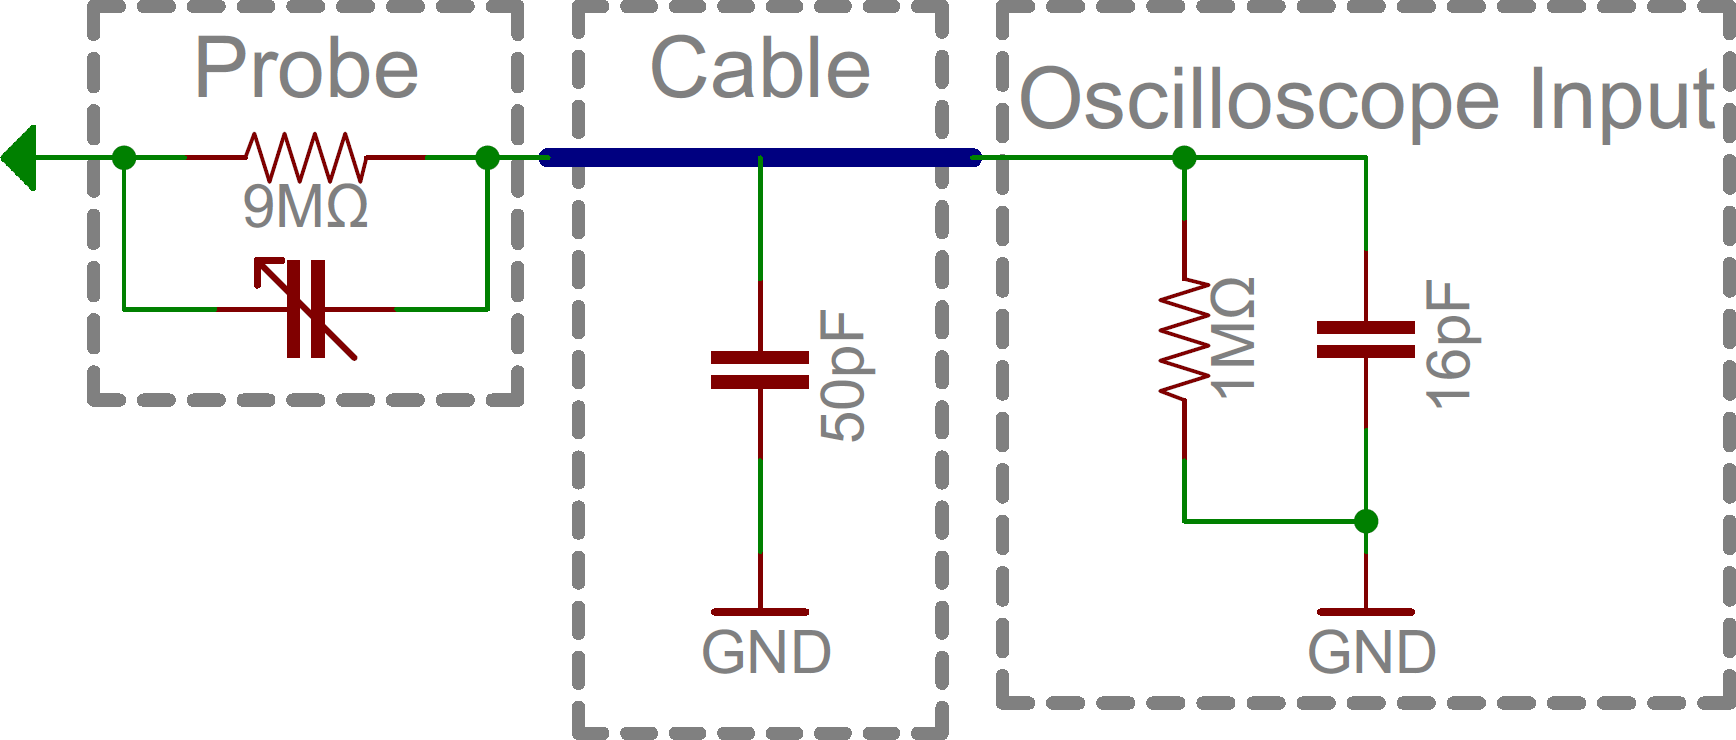 hight resolution of simplified schematic of probe transmission wire scope input